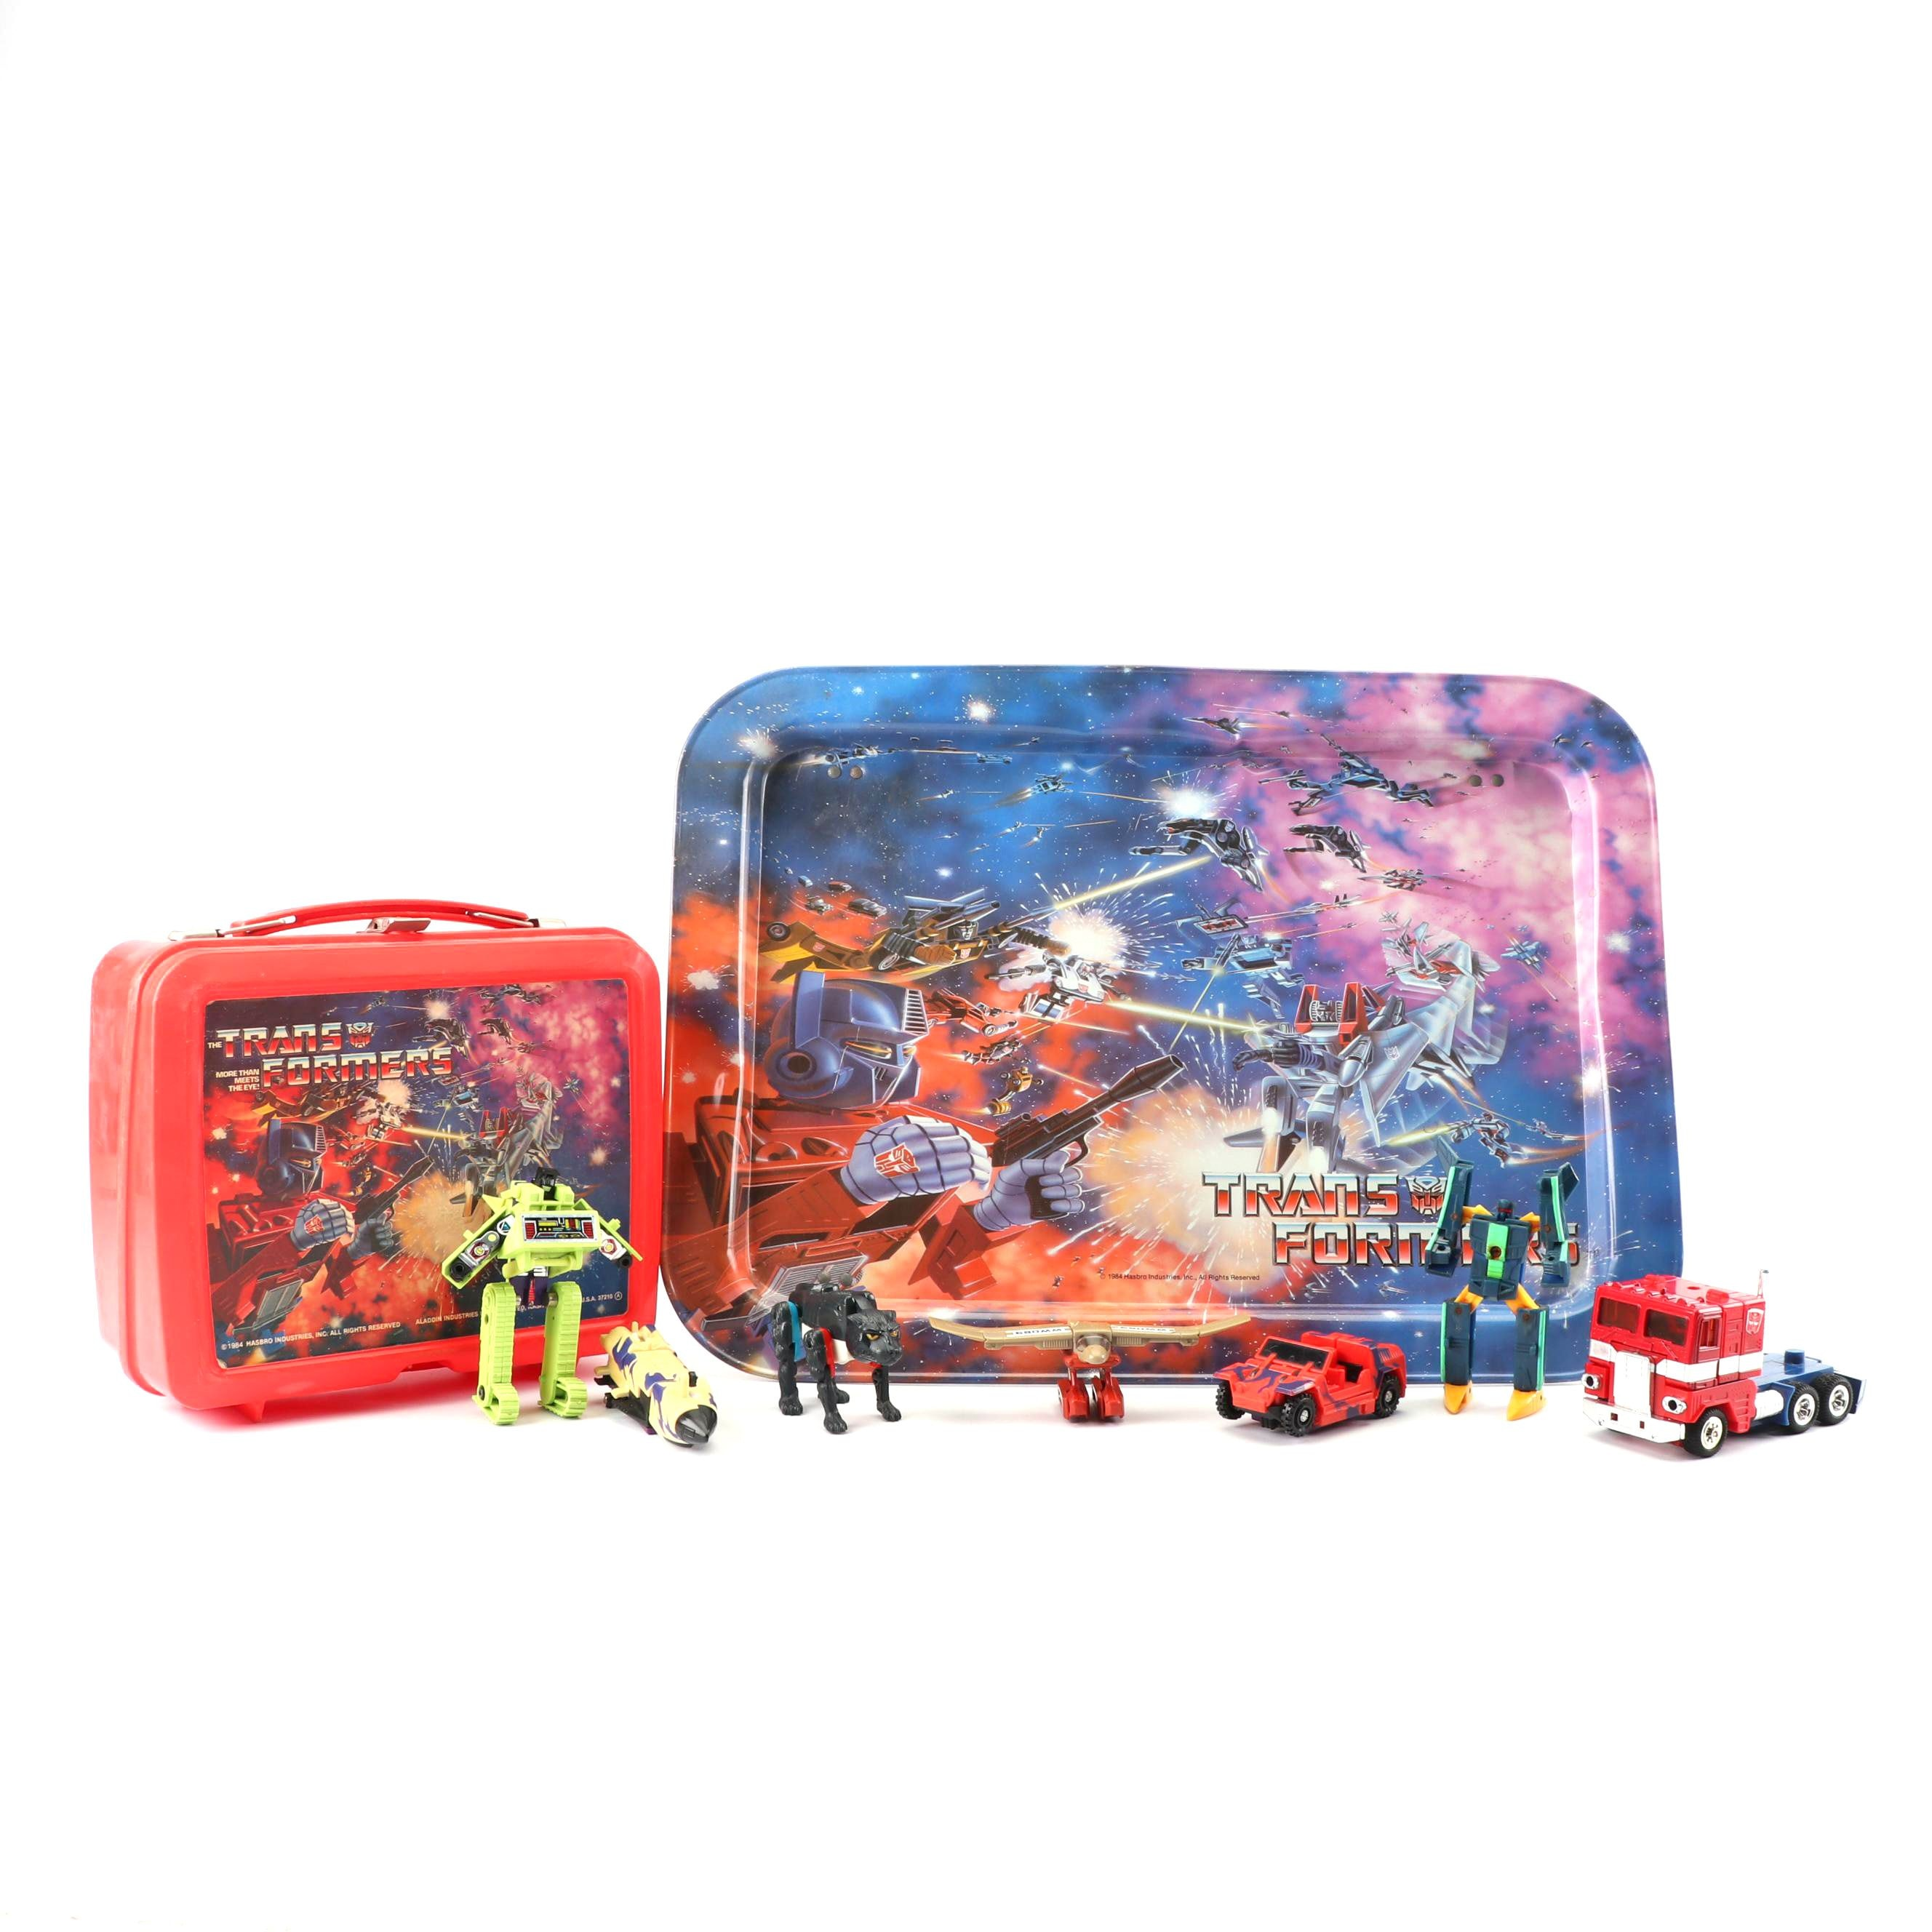 Vintage Transformers Lunchbox, Dinner Tray and Action Figures